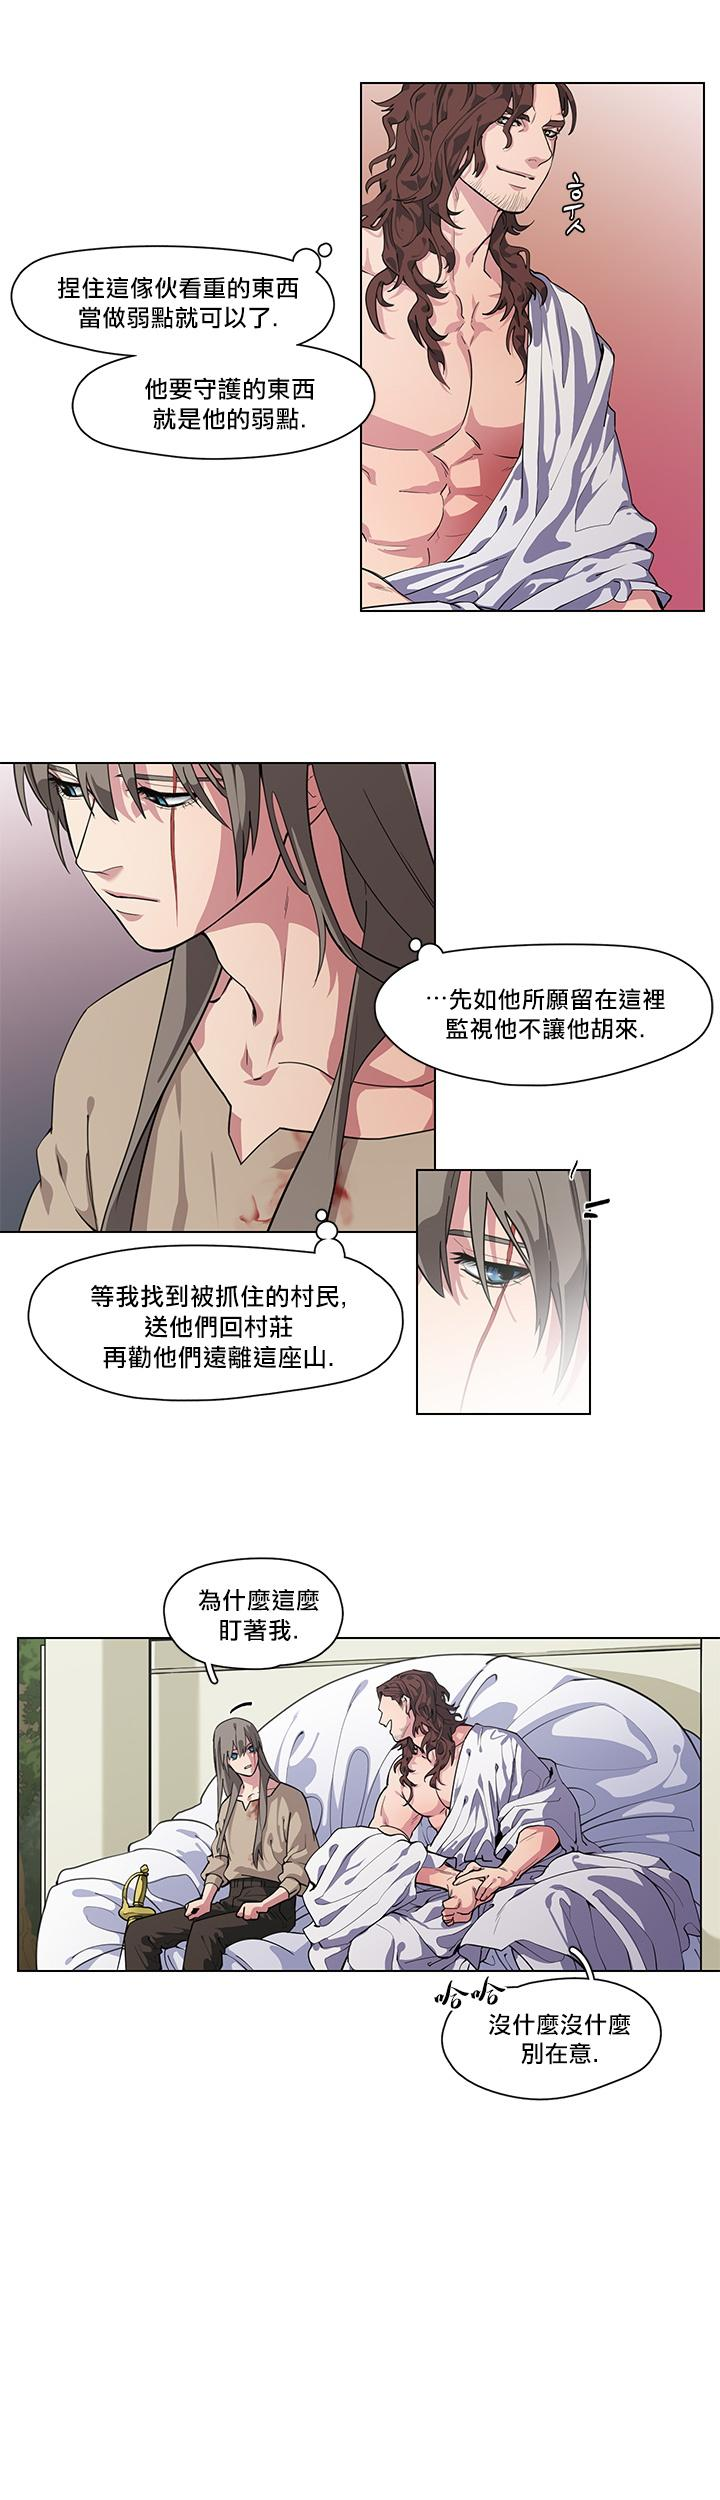 The Warrior and the Deity   勇者与山神 Ch. 2-3 6